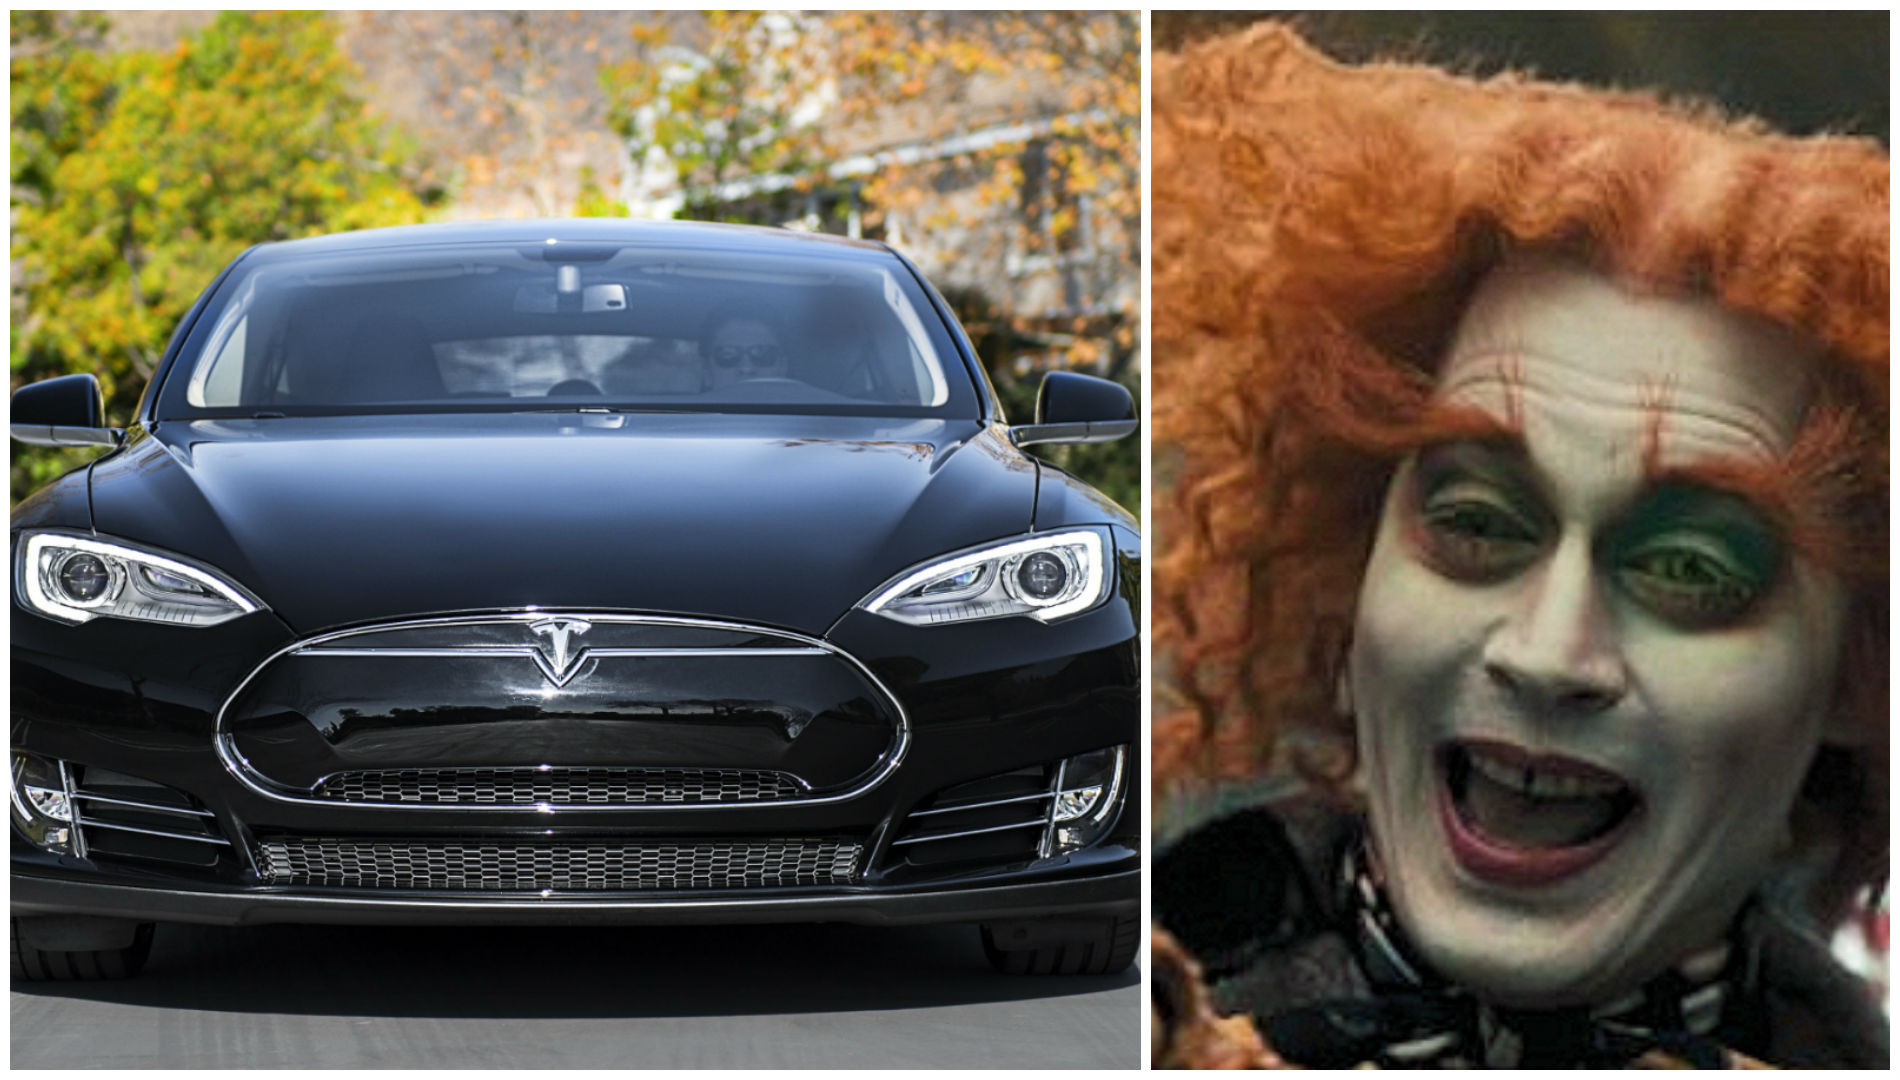 How To Buff A Car >> Johnny Depp Gets Busted for Speeding in a Tesla with Jarvis Voice Actor in His Lap - autoevolution